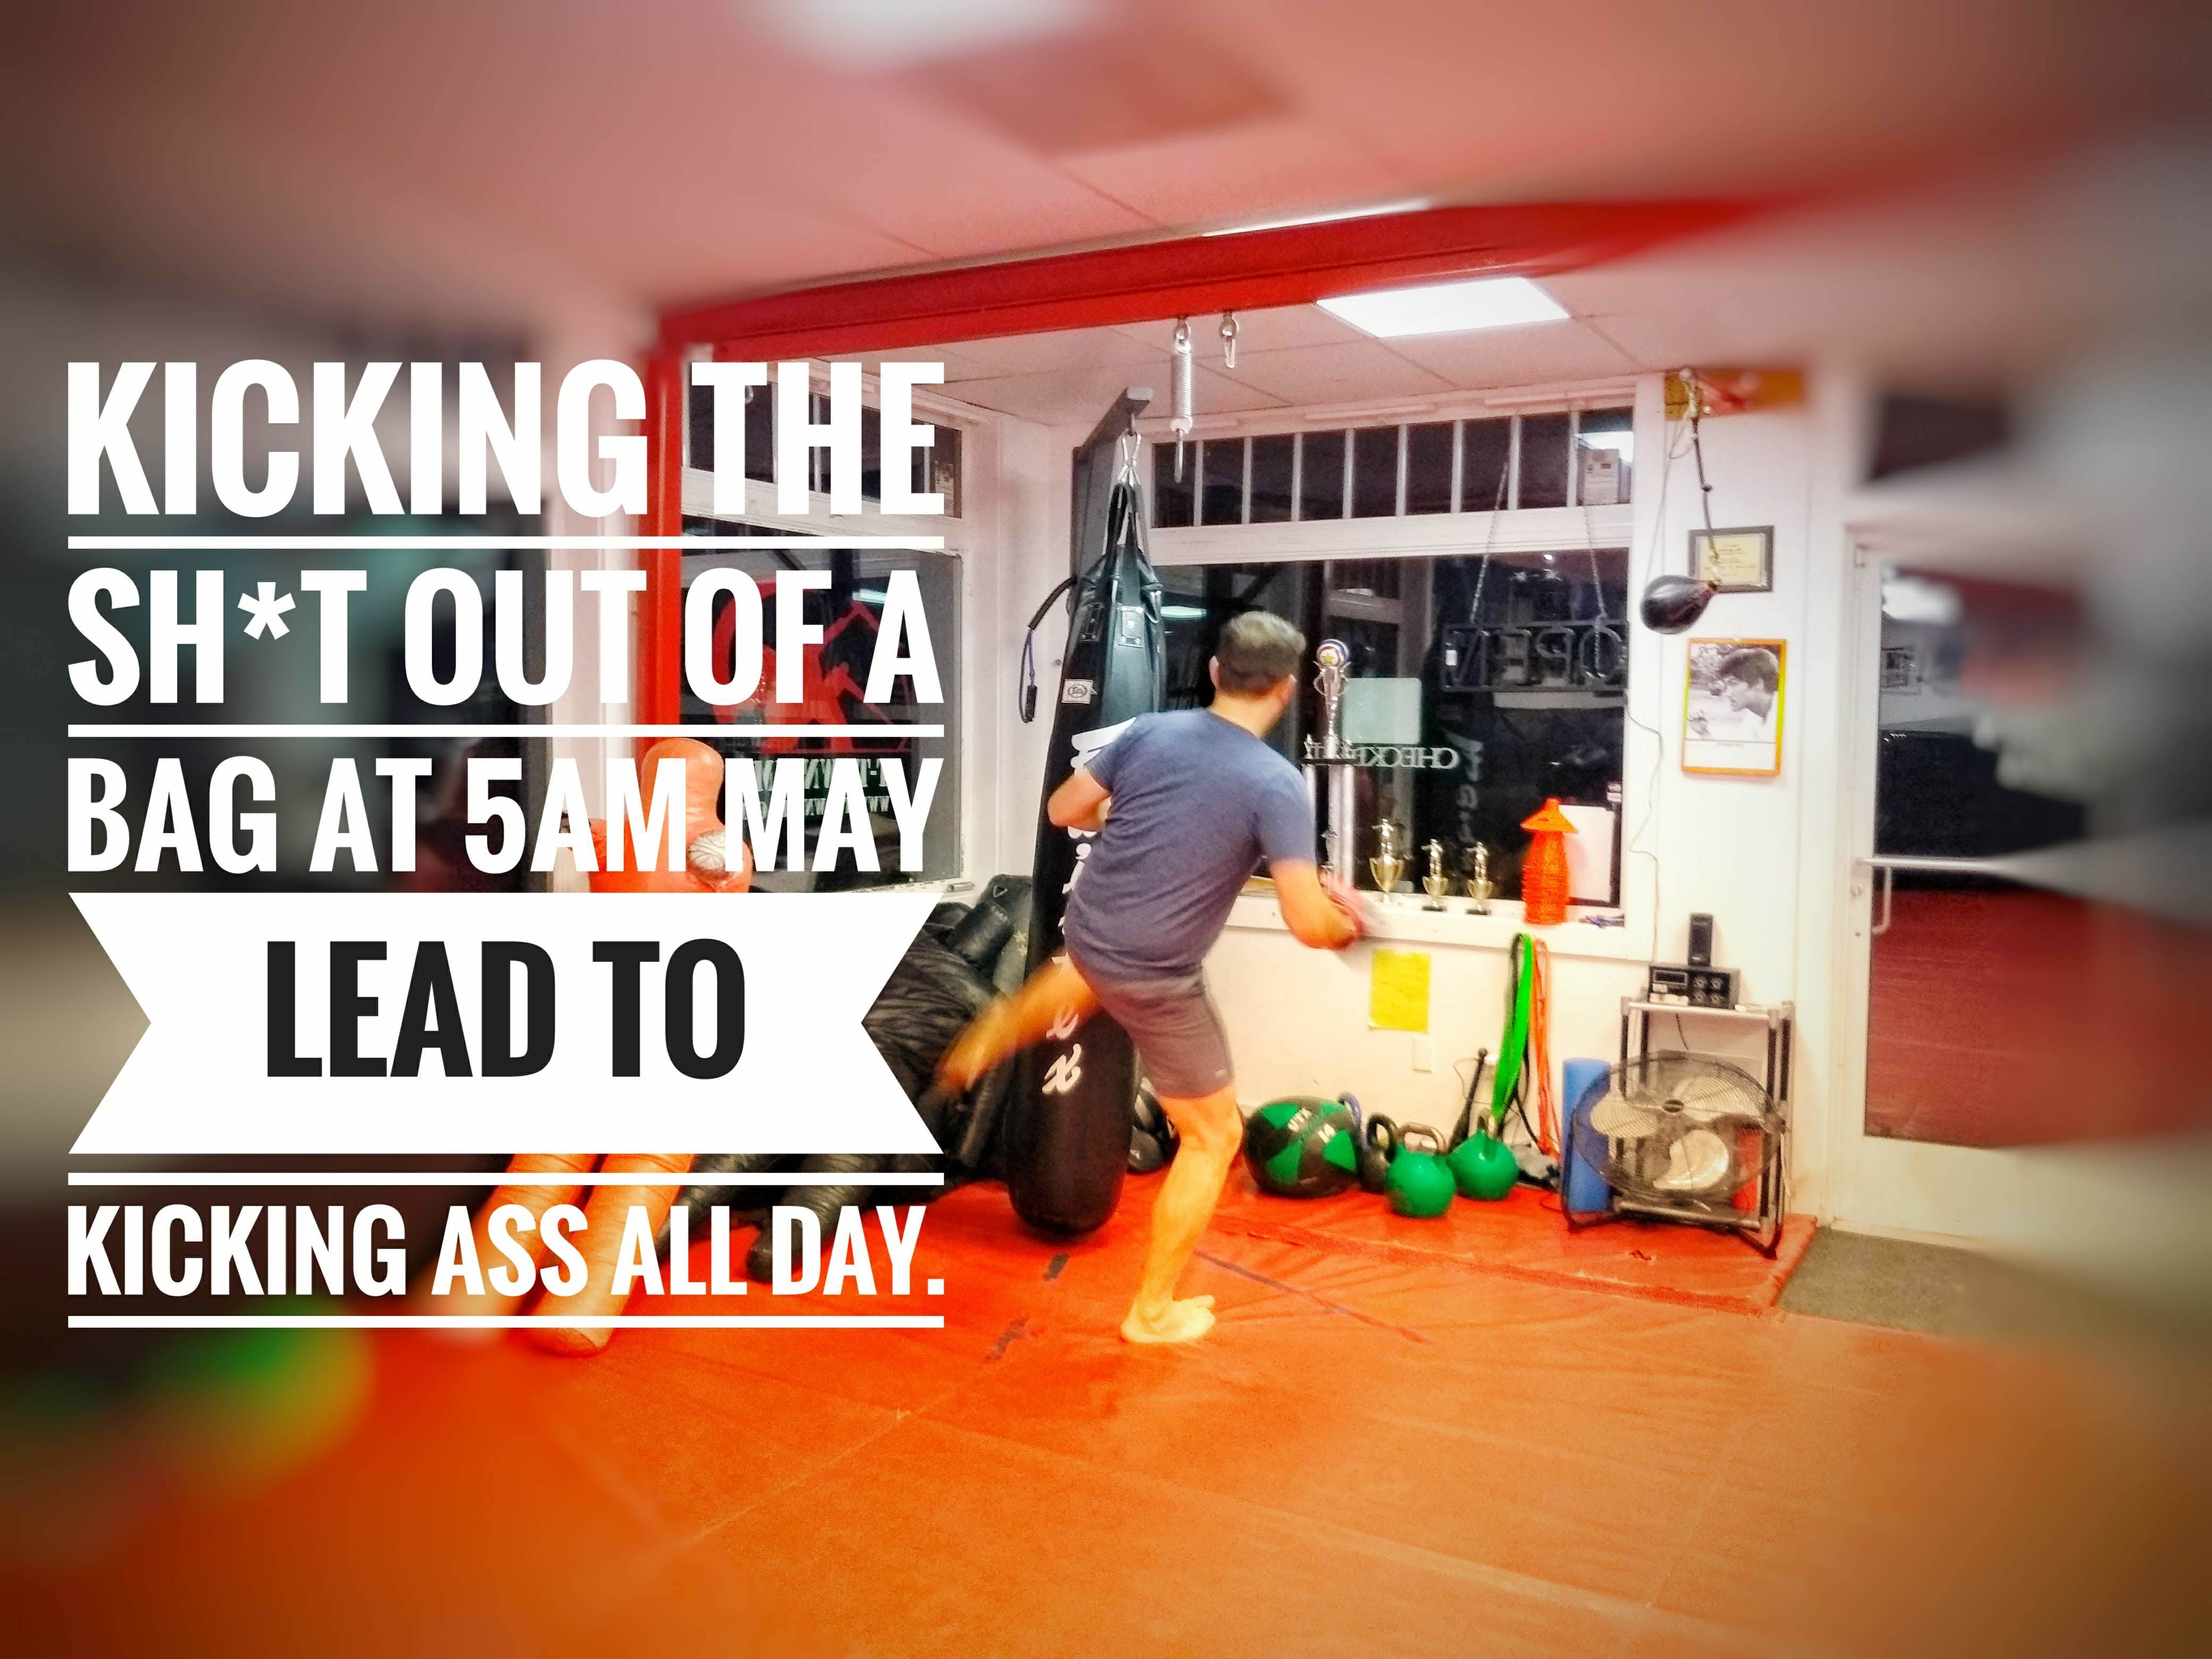 5 Rings Kickboxing-Introductory offer 5RKBXG-INTRO